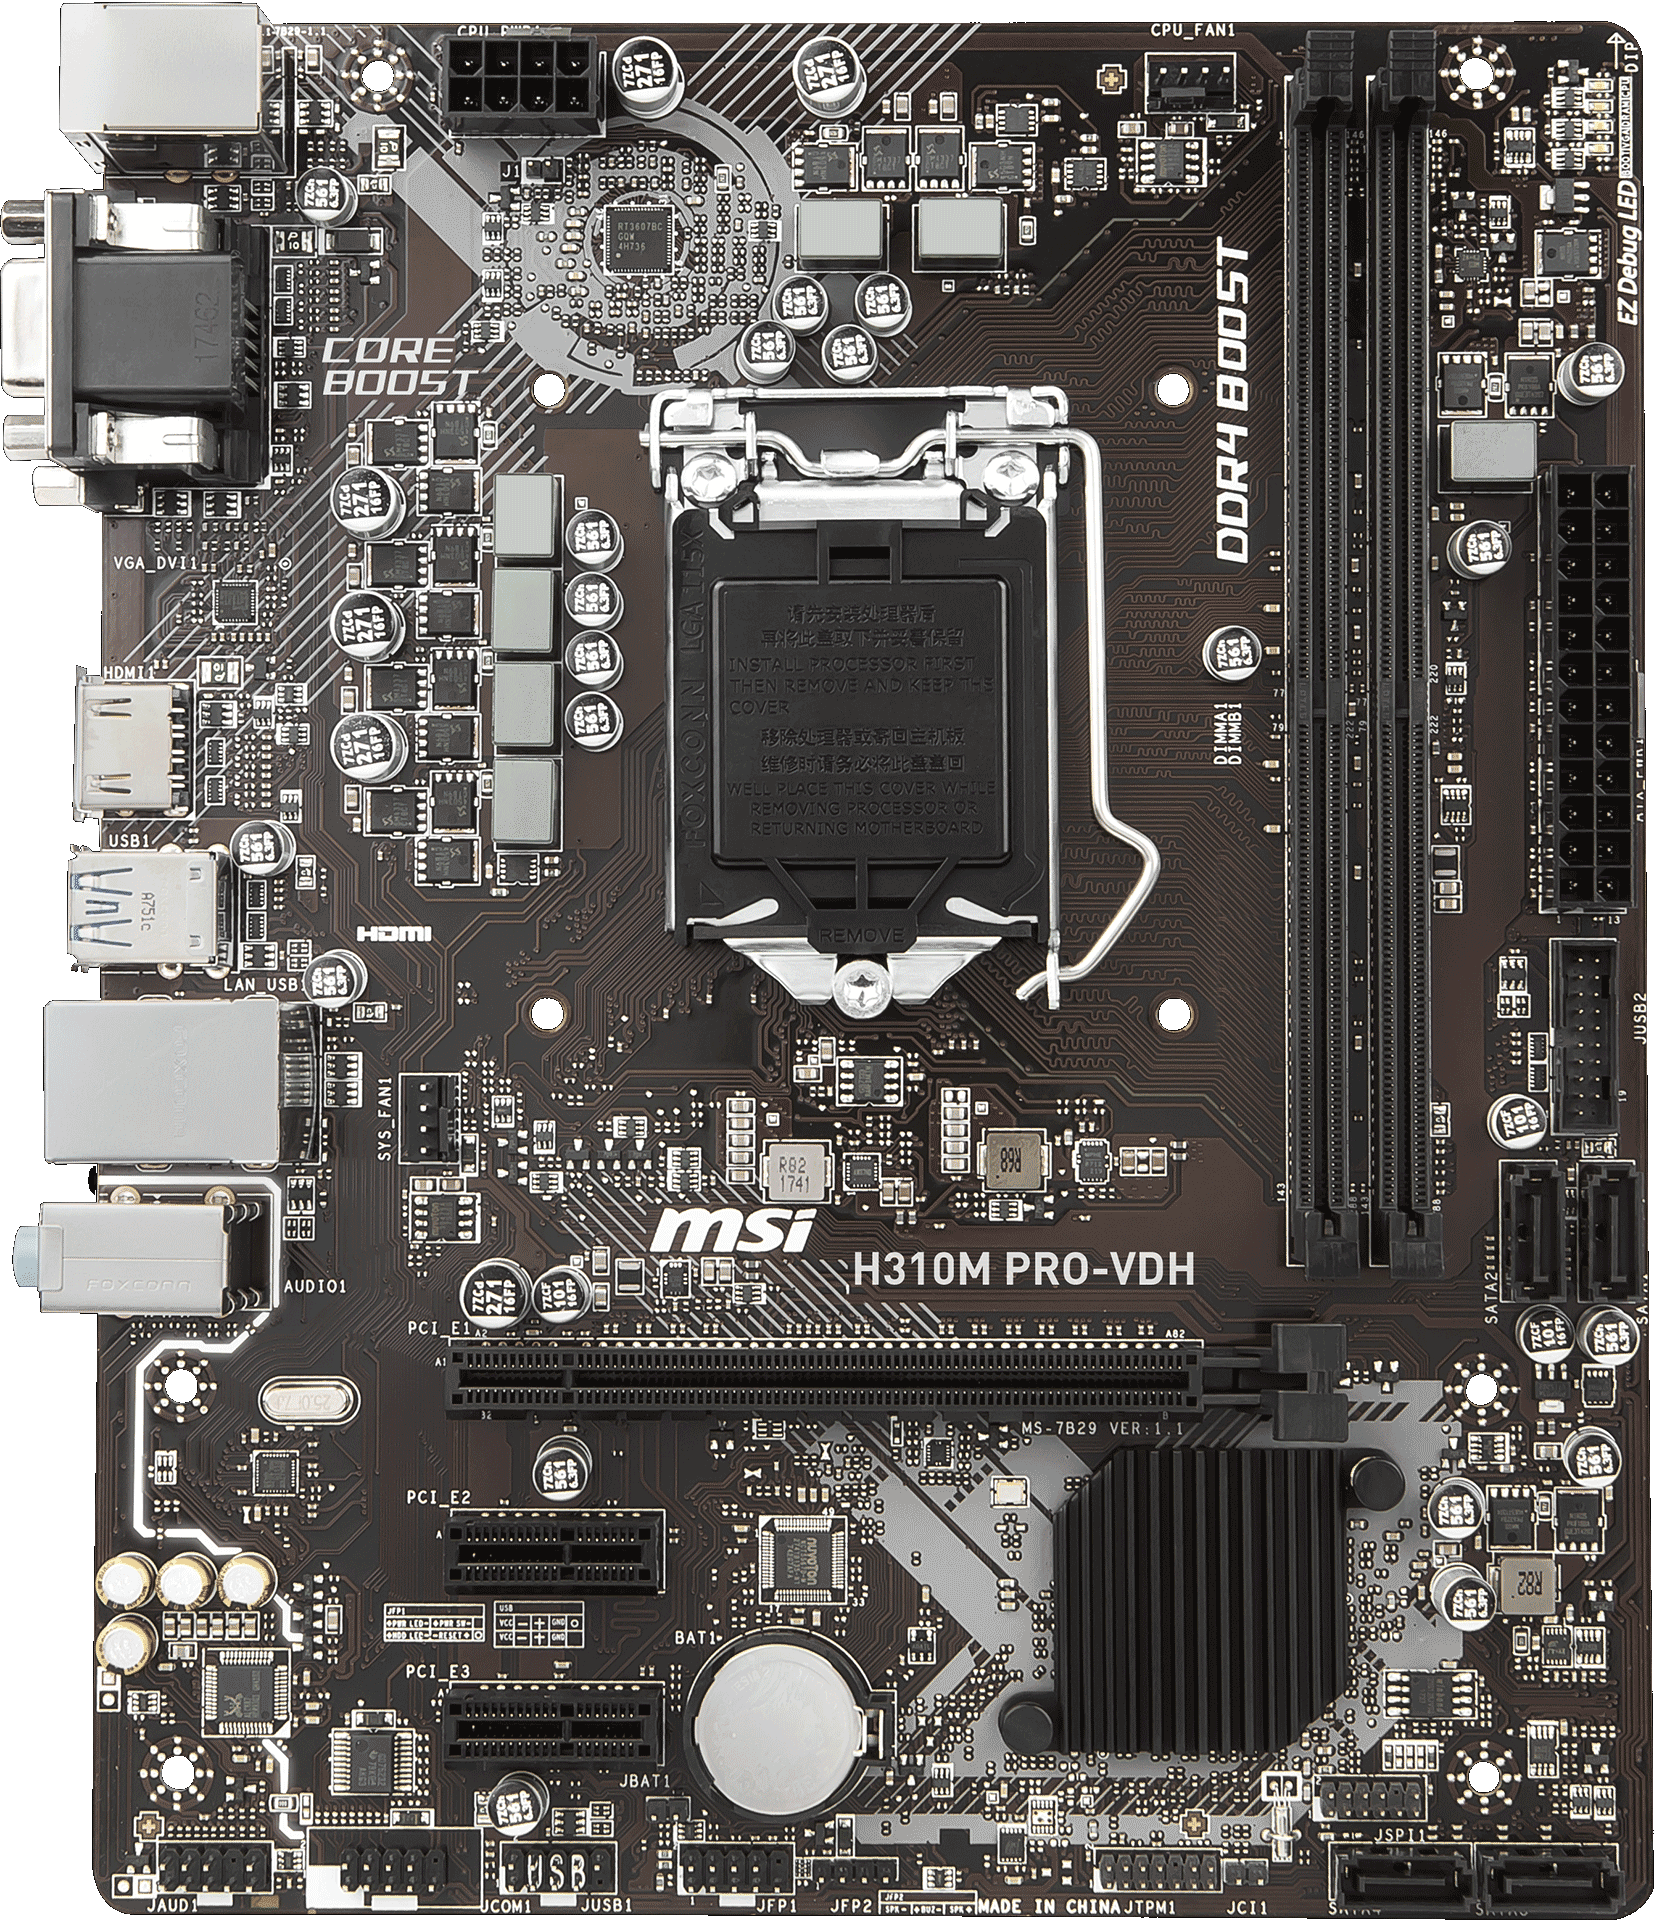 H310M PRO-VDH | Motherboard - The world leader in